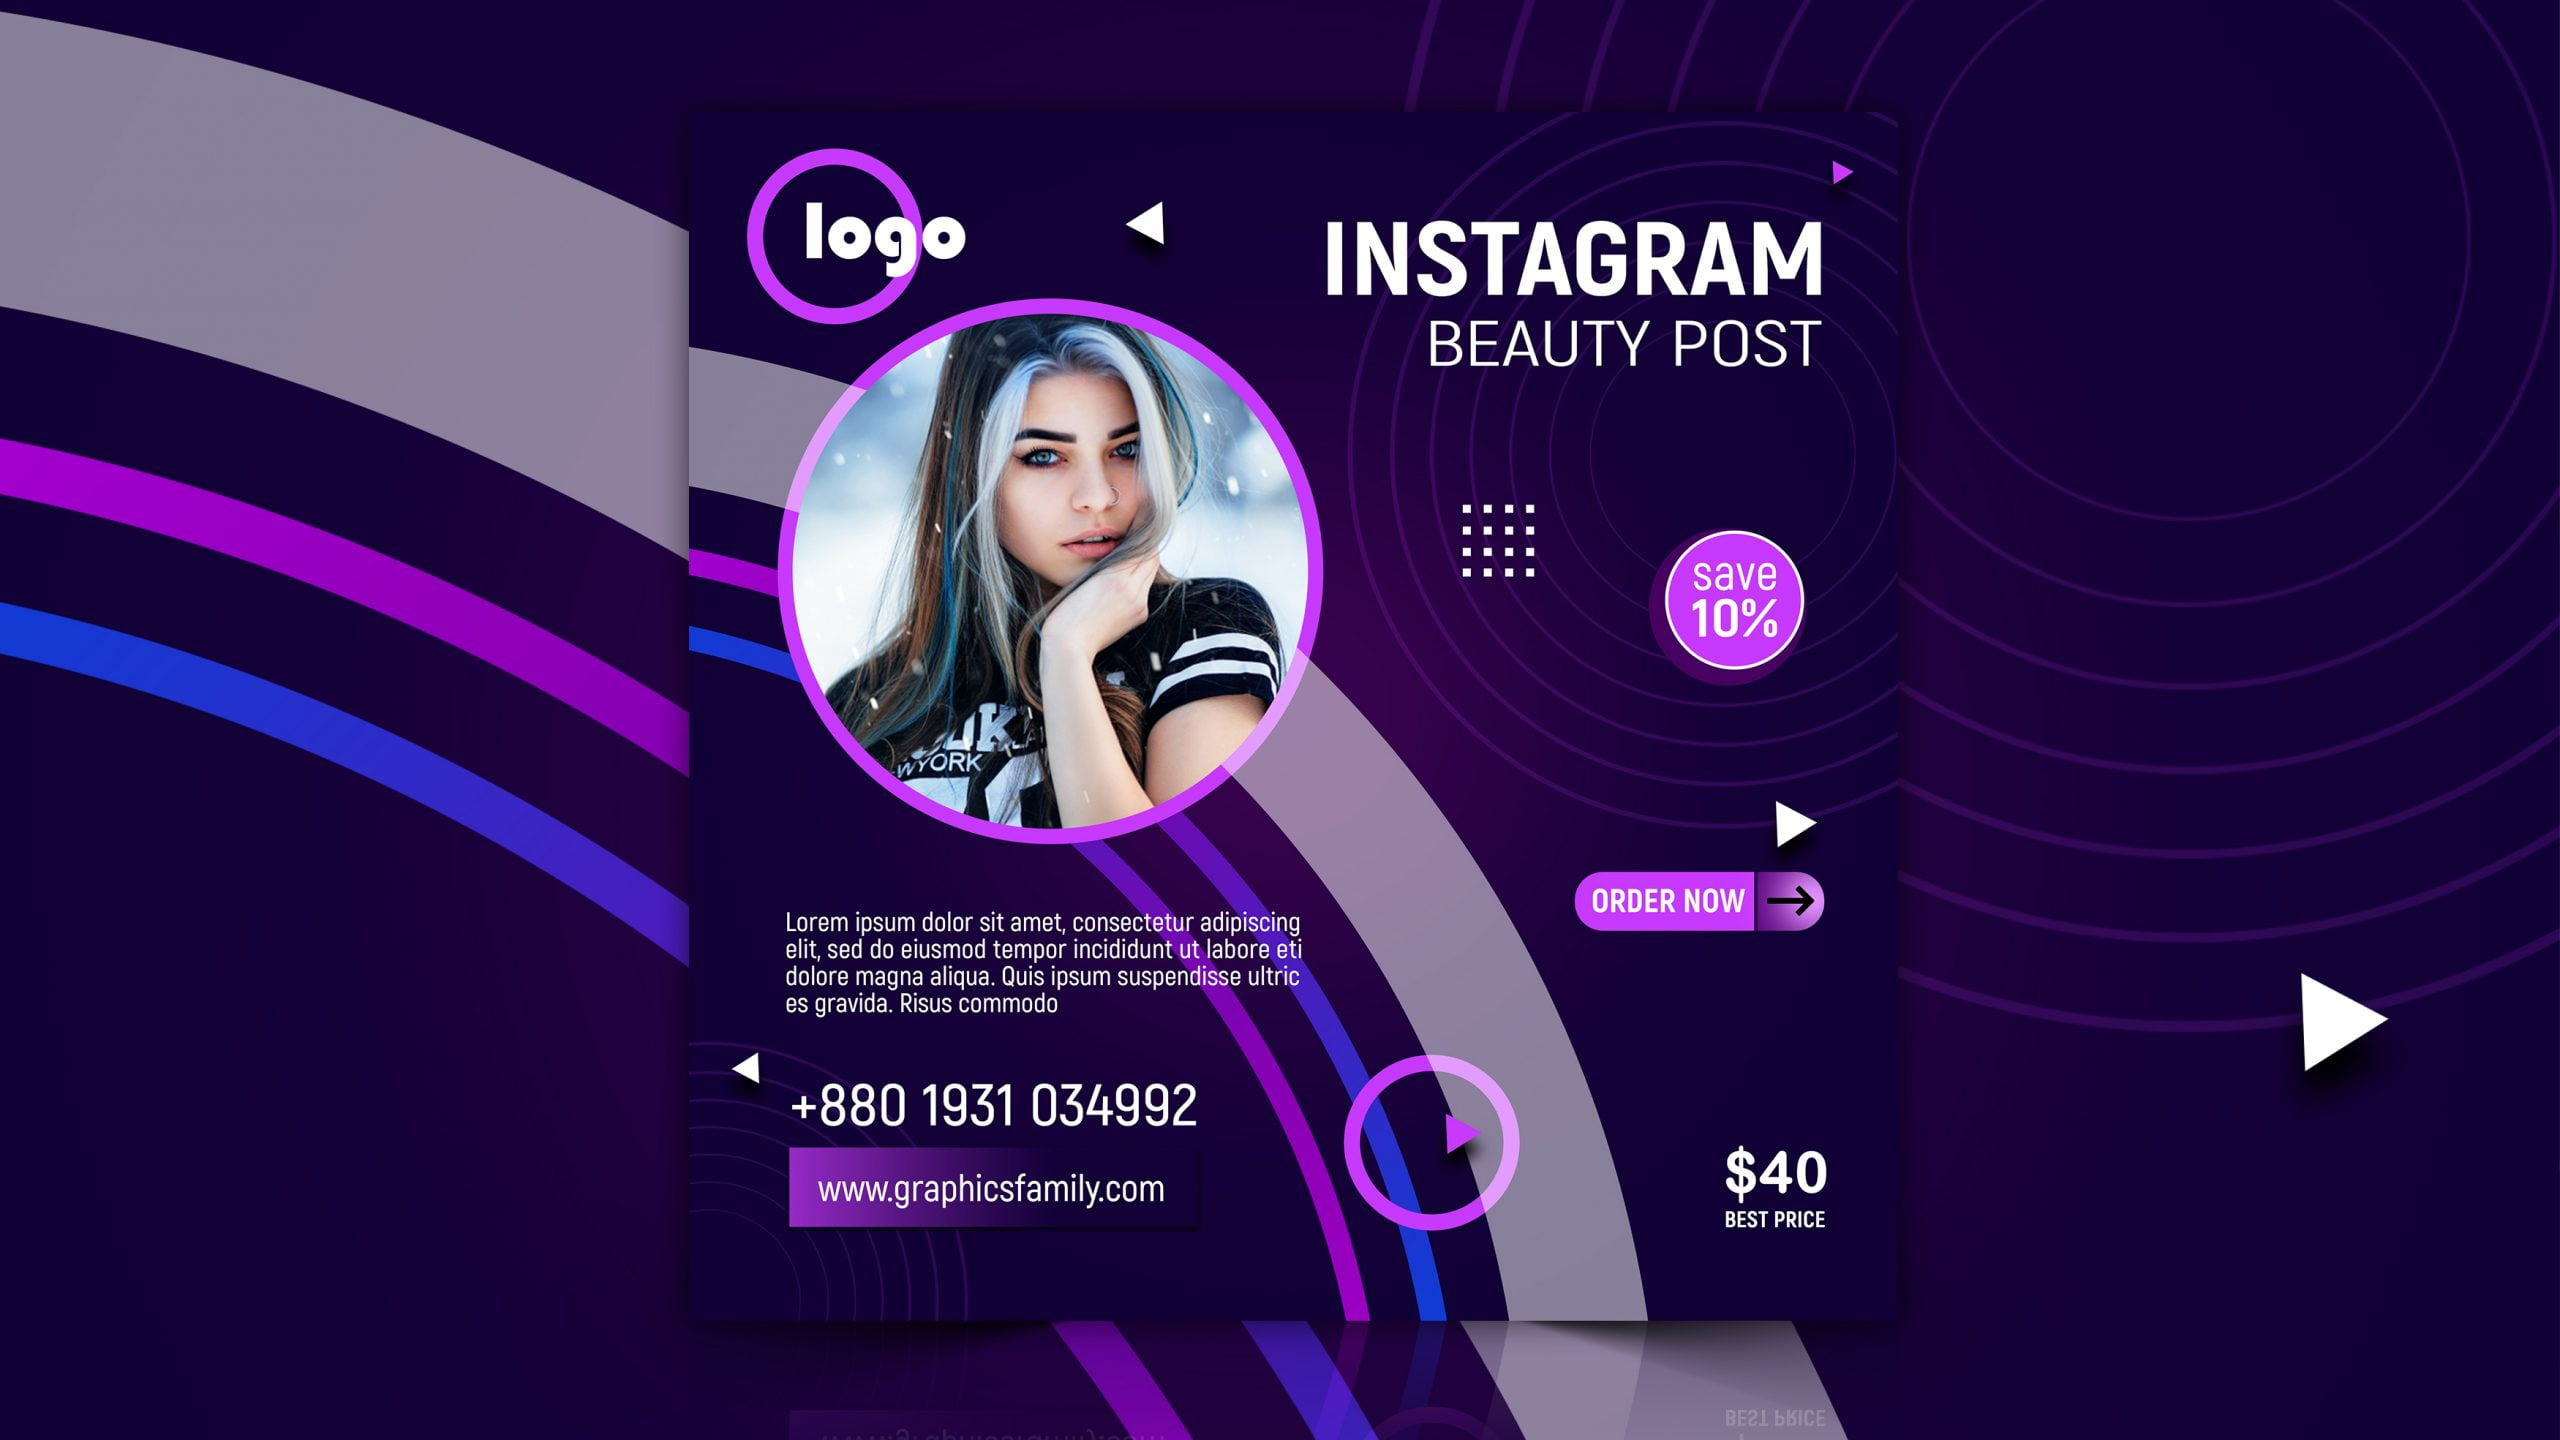 Free Social Media Post Design for Cosmetics Business Digital Marketing Download